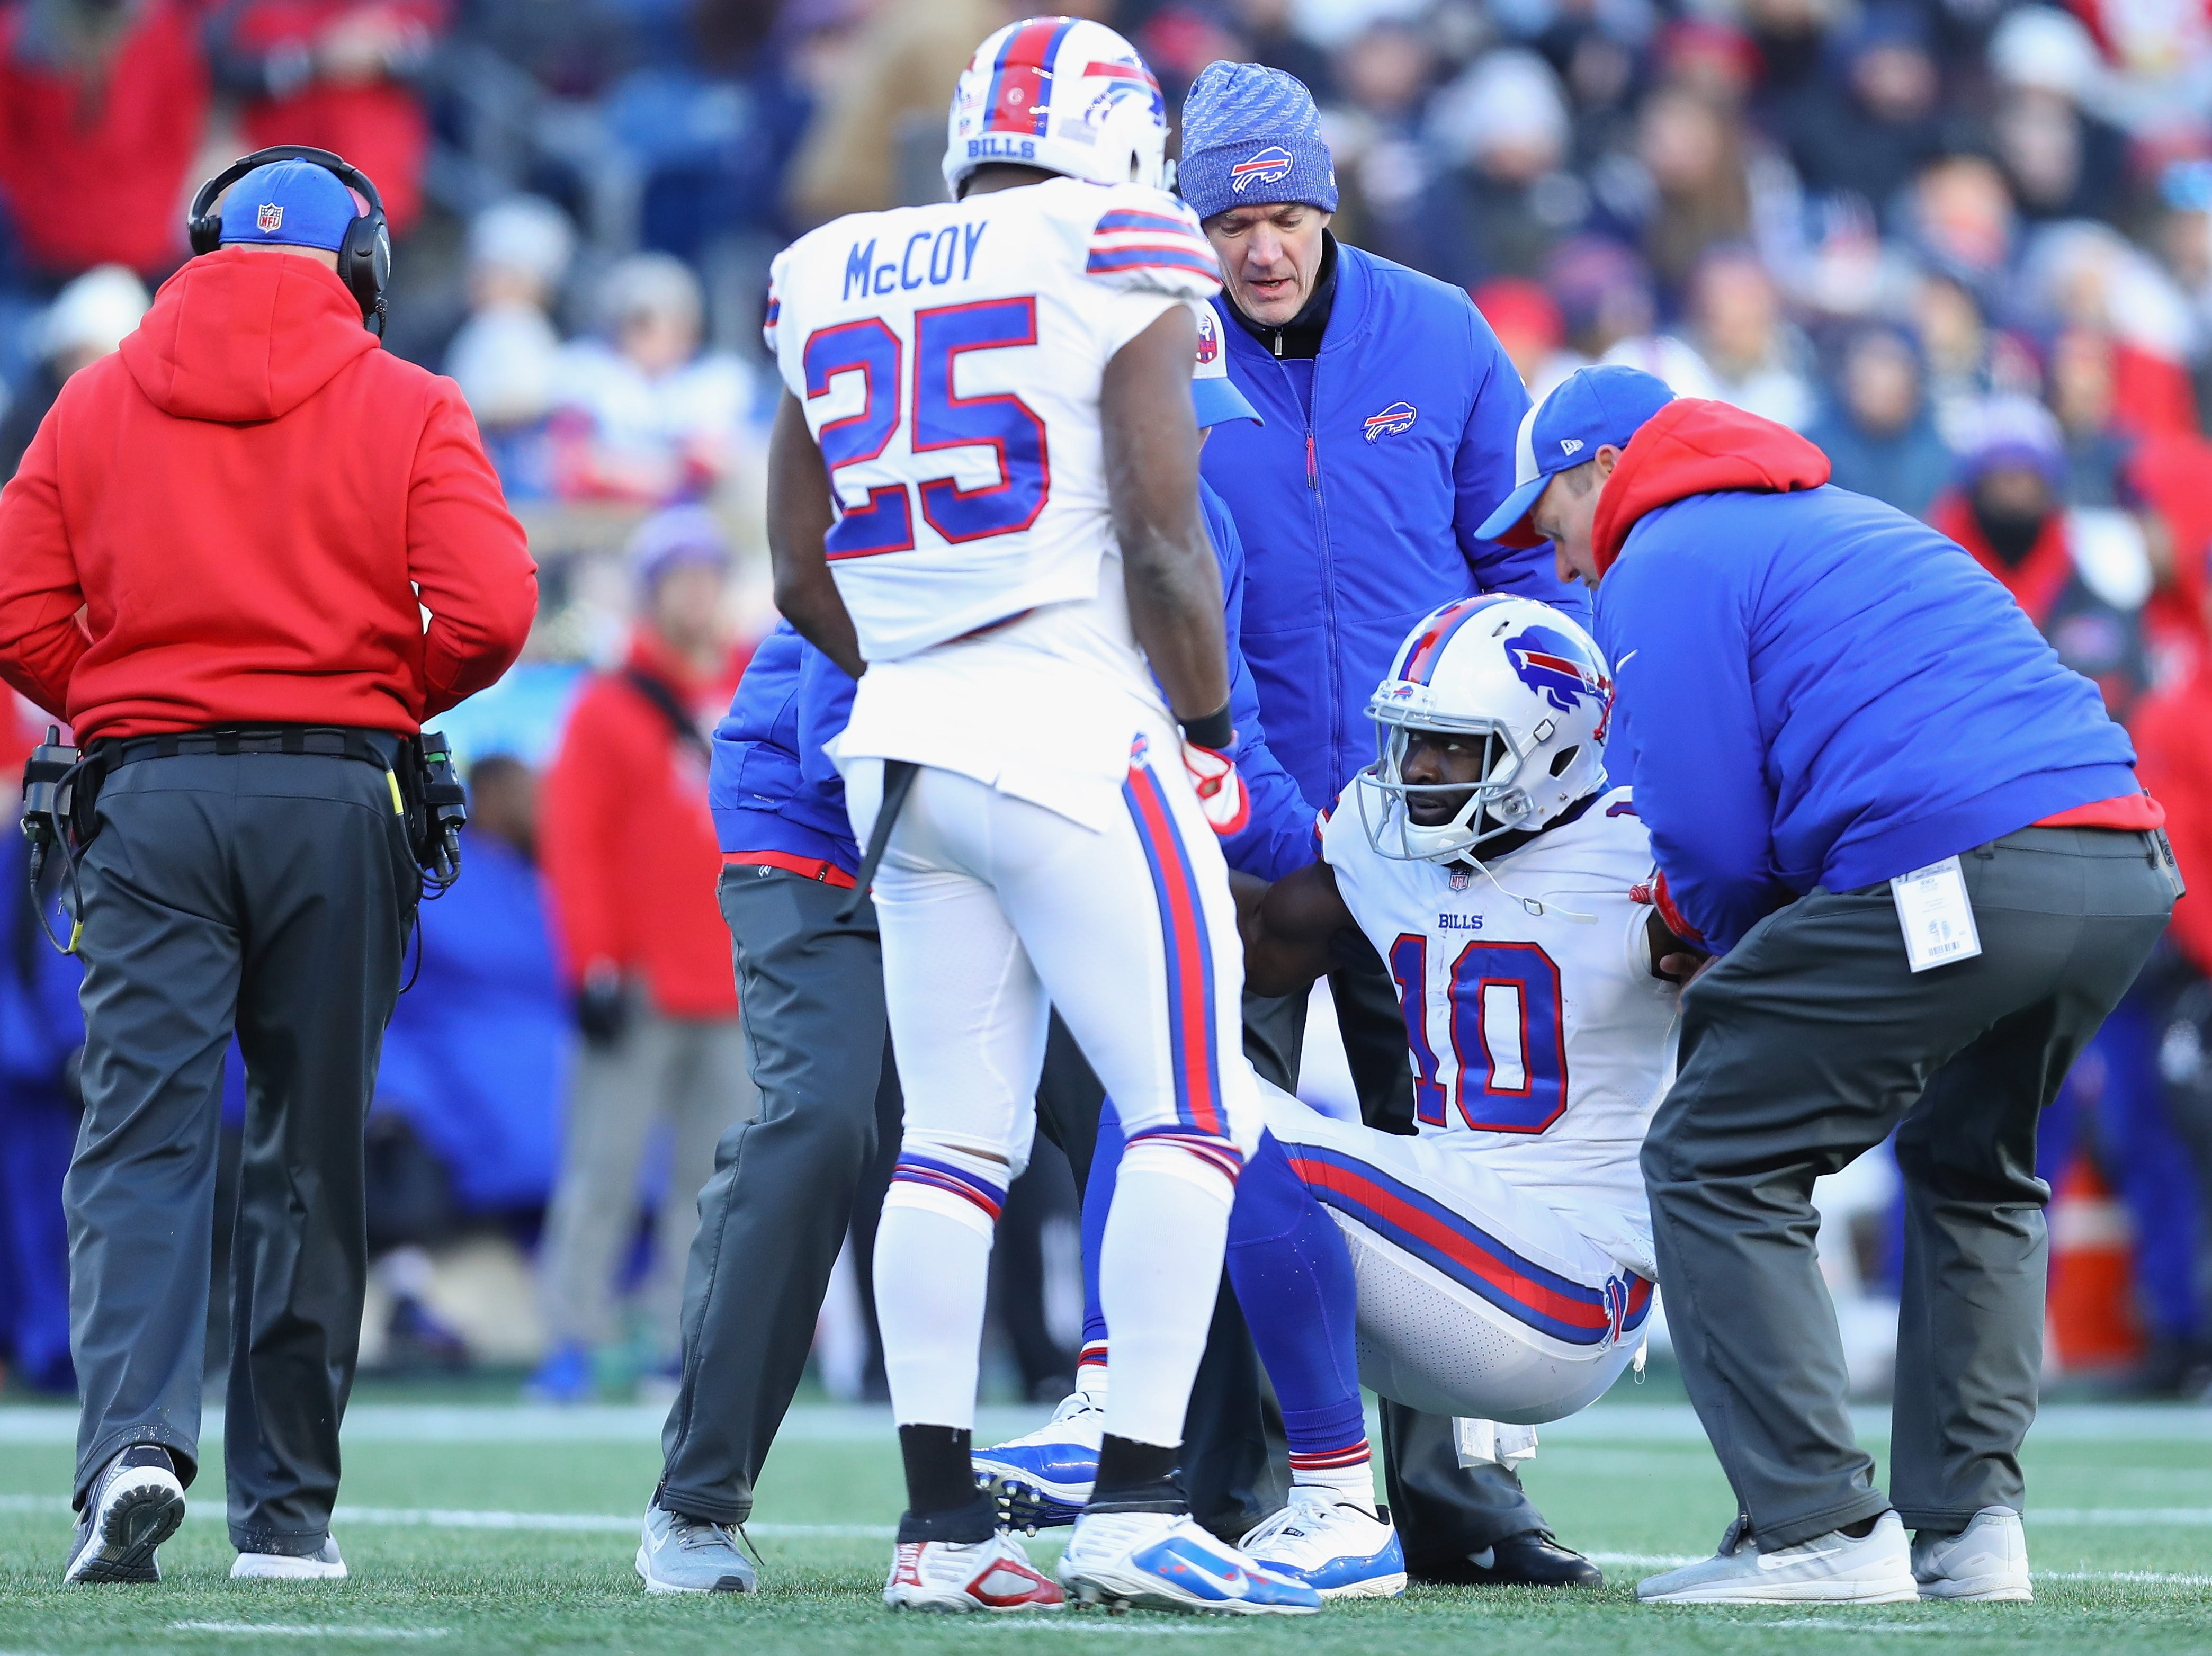 FOXBOROUGH, MA - DECEMBER 23:  Deonte Thompson #10 of the Buffalo Bills reacts after suffering an injury during the second half against the New England Patriots at Gillette Stadium on December 23, 2018 in Foxborough, Massachusetts.  (Photo by Maddie Meyer/Getty Images)